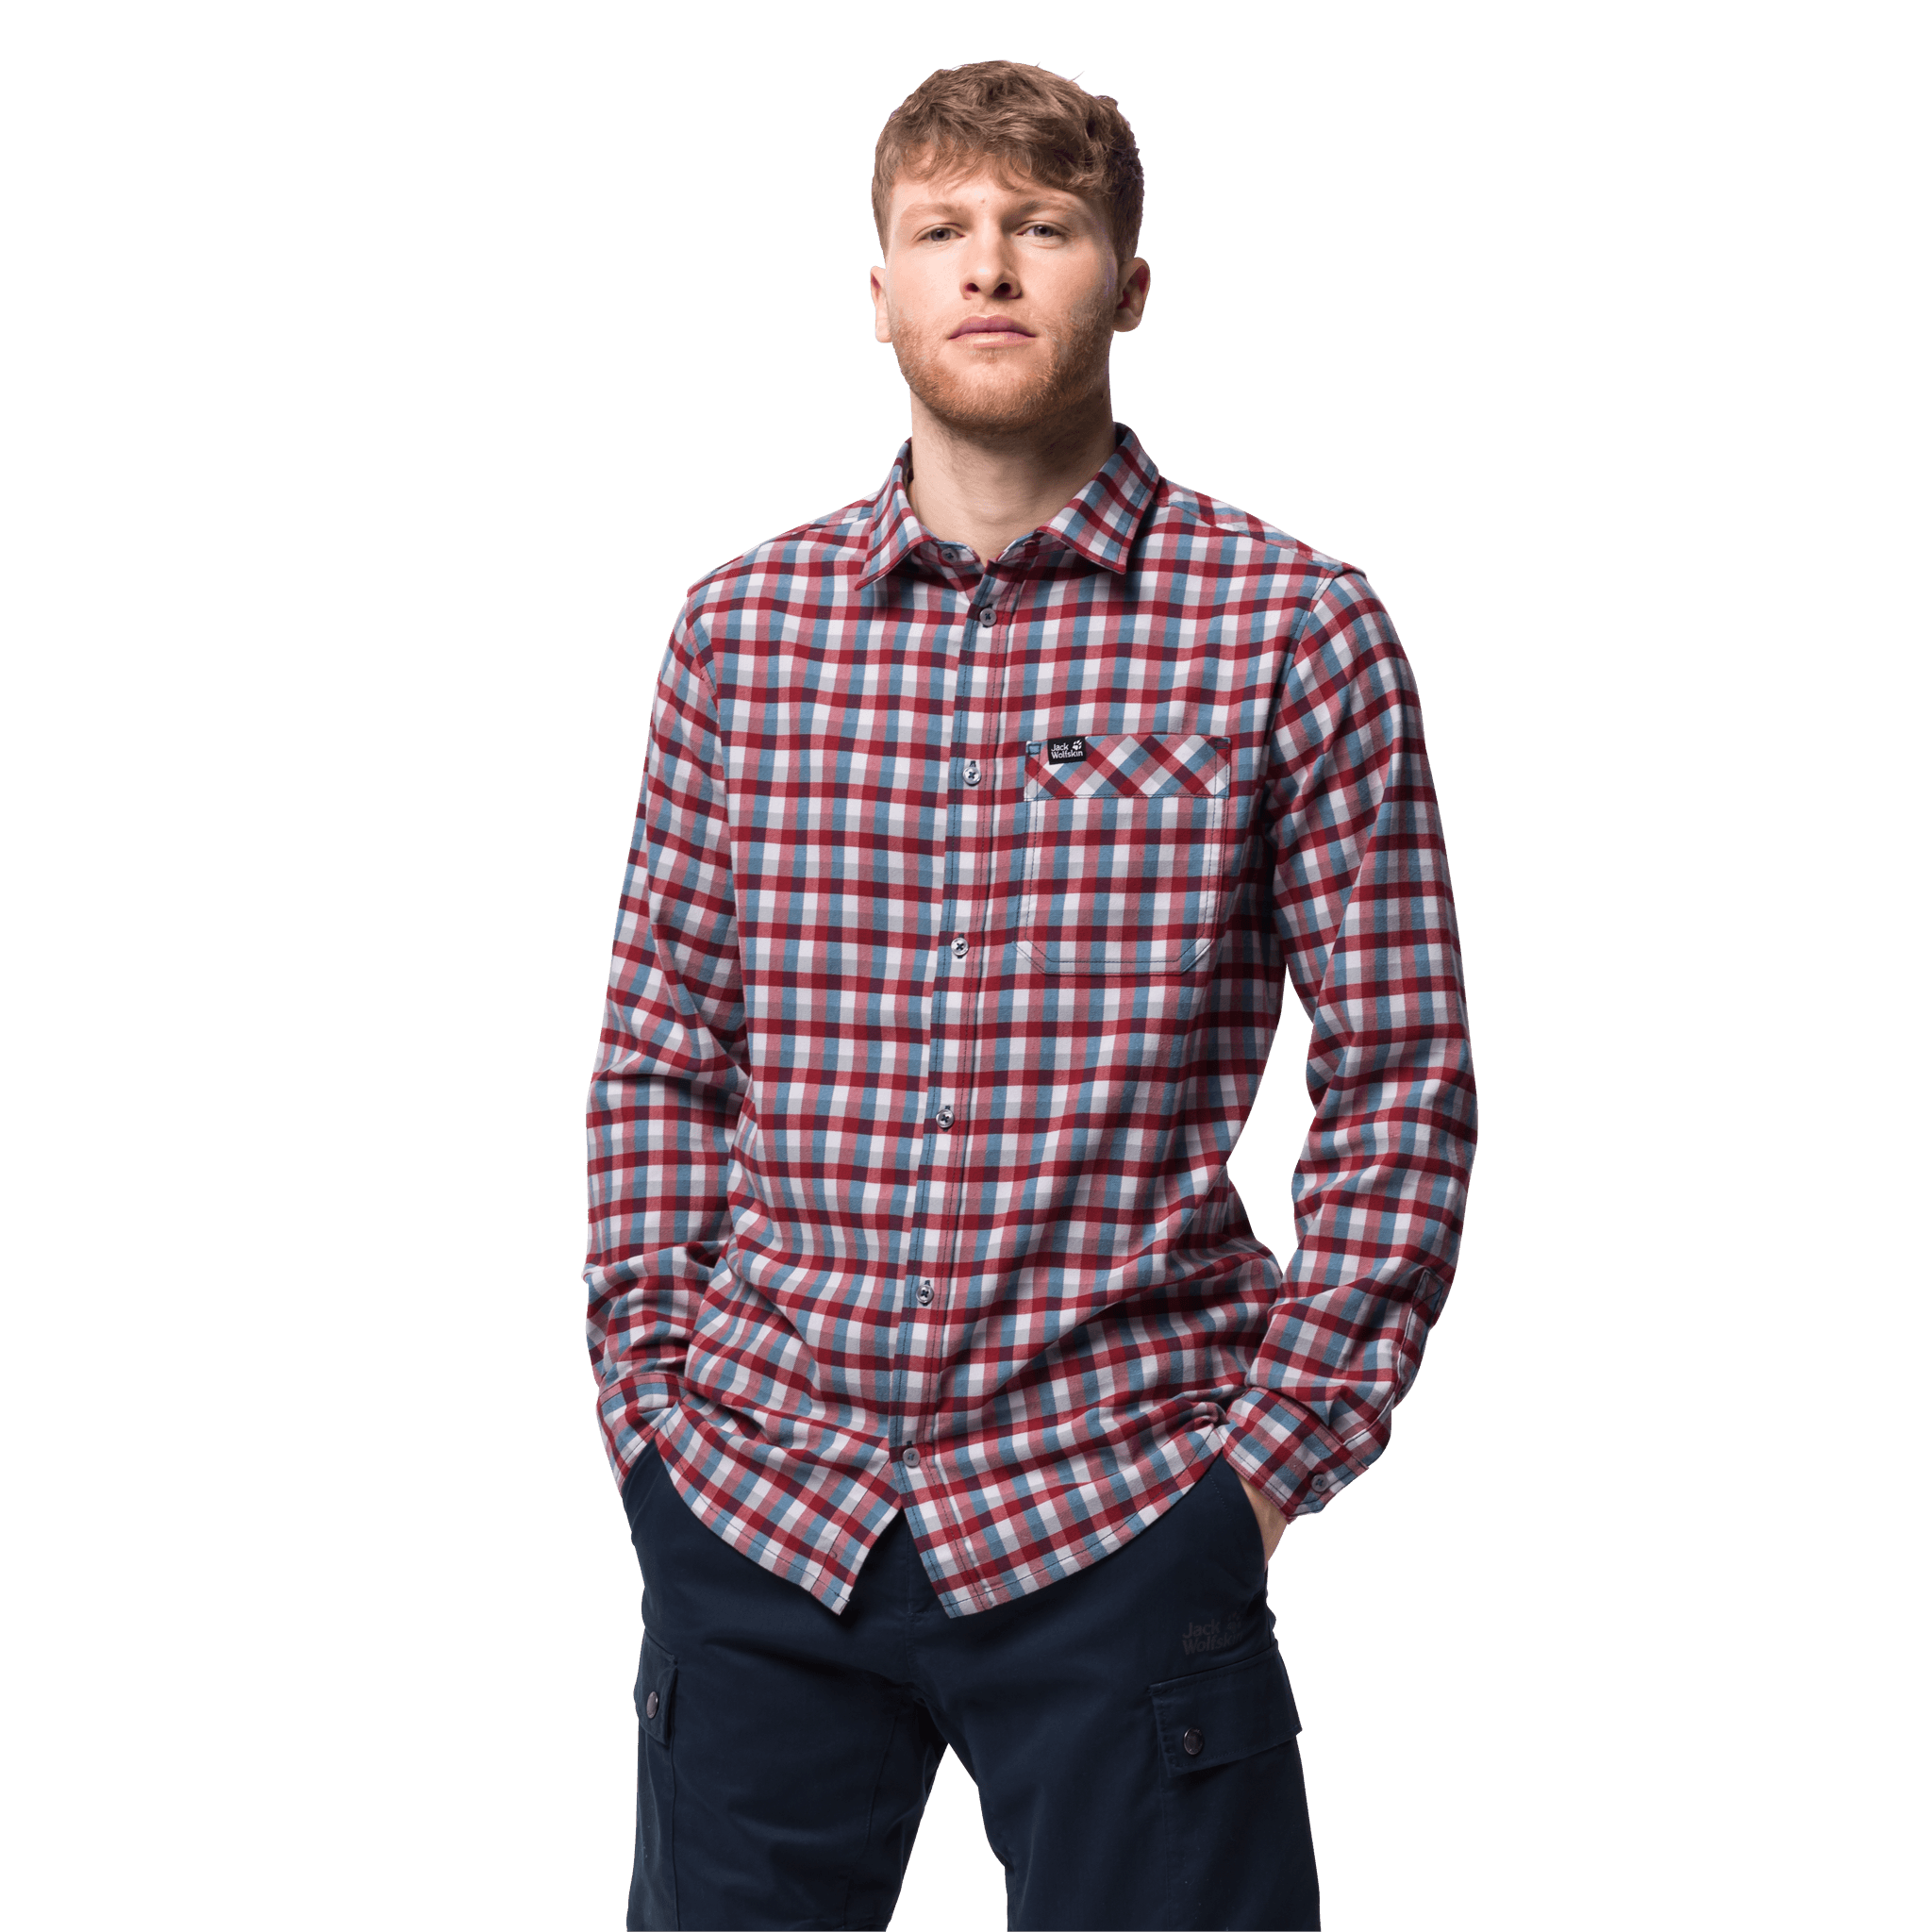 Dark Lacquer Red Checks Flannel Shirt Men